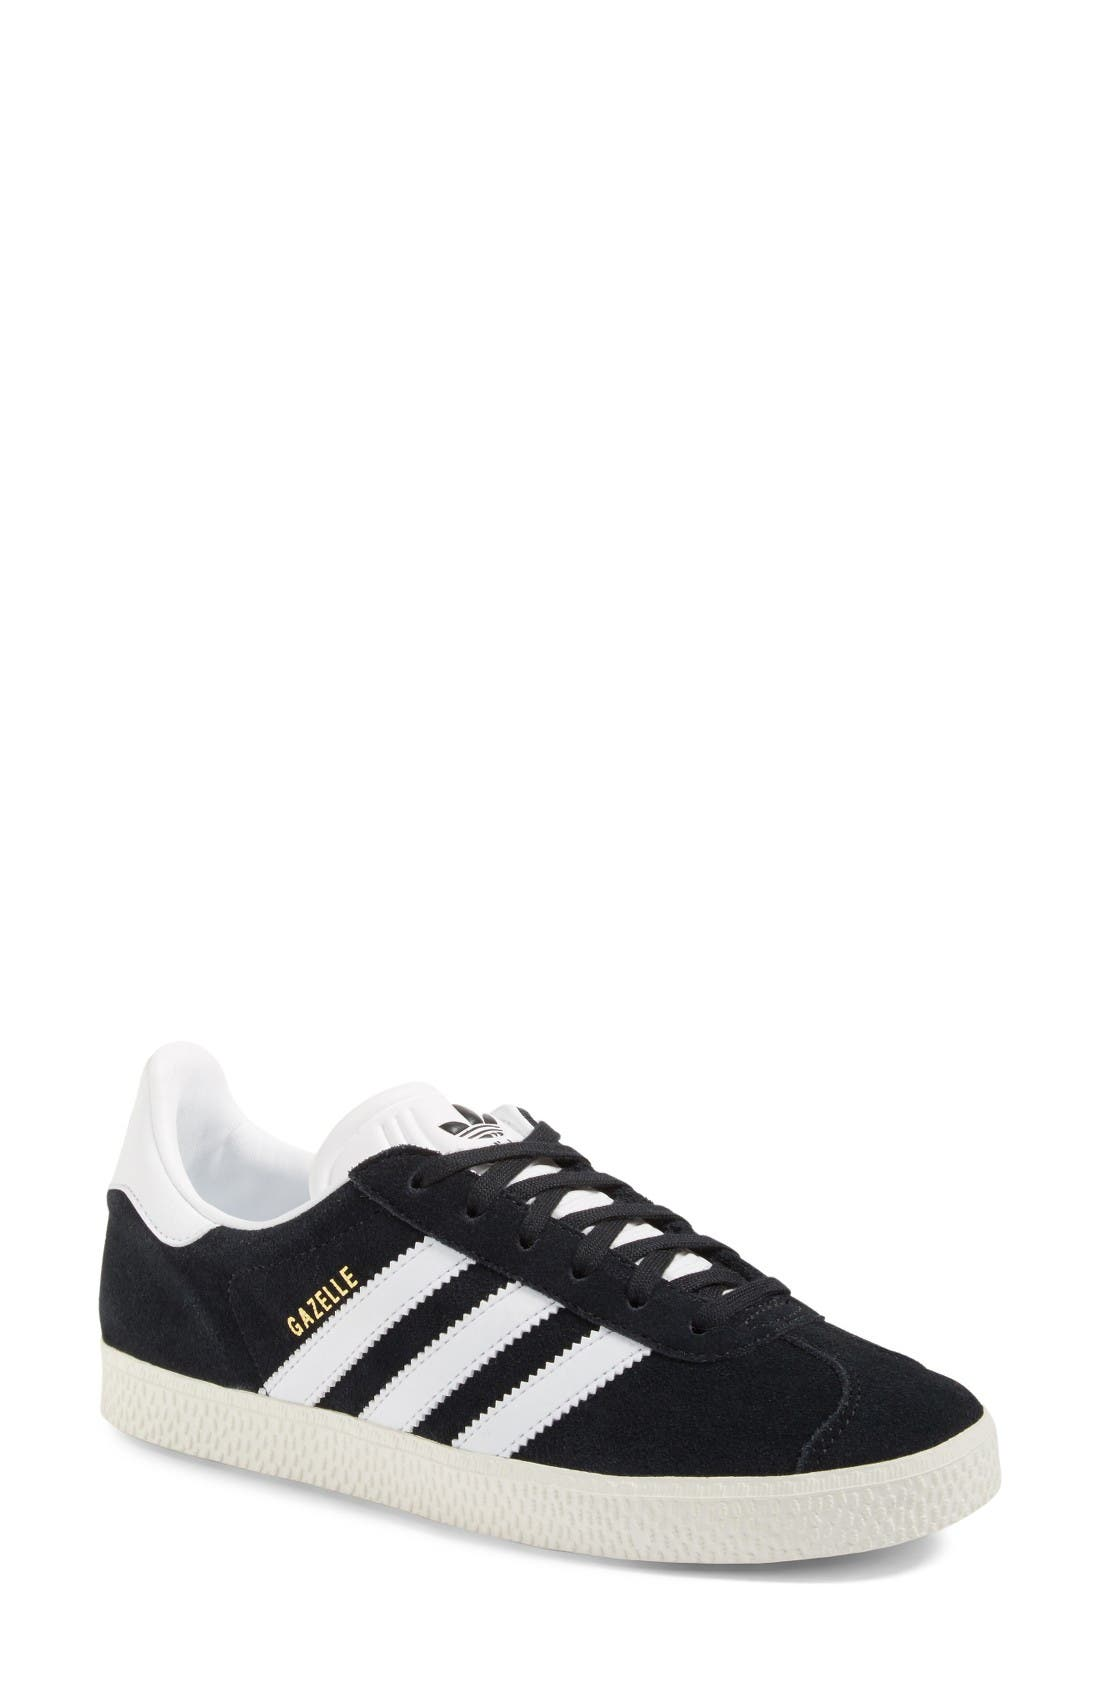 Gazelle Sneaker,                         Main,                         color, Core Black